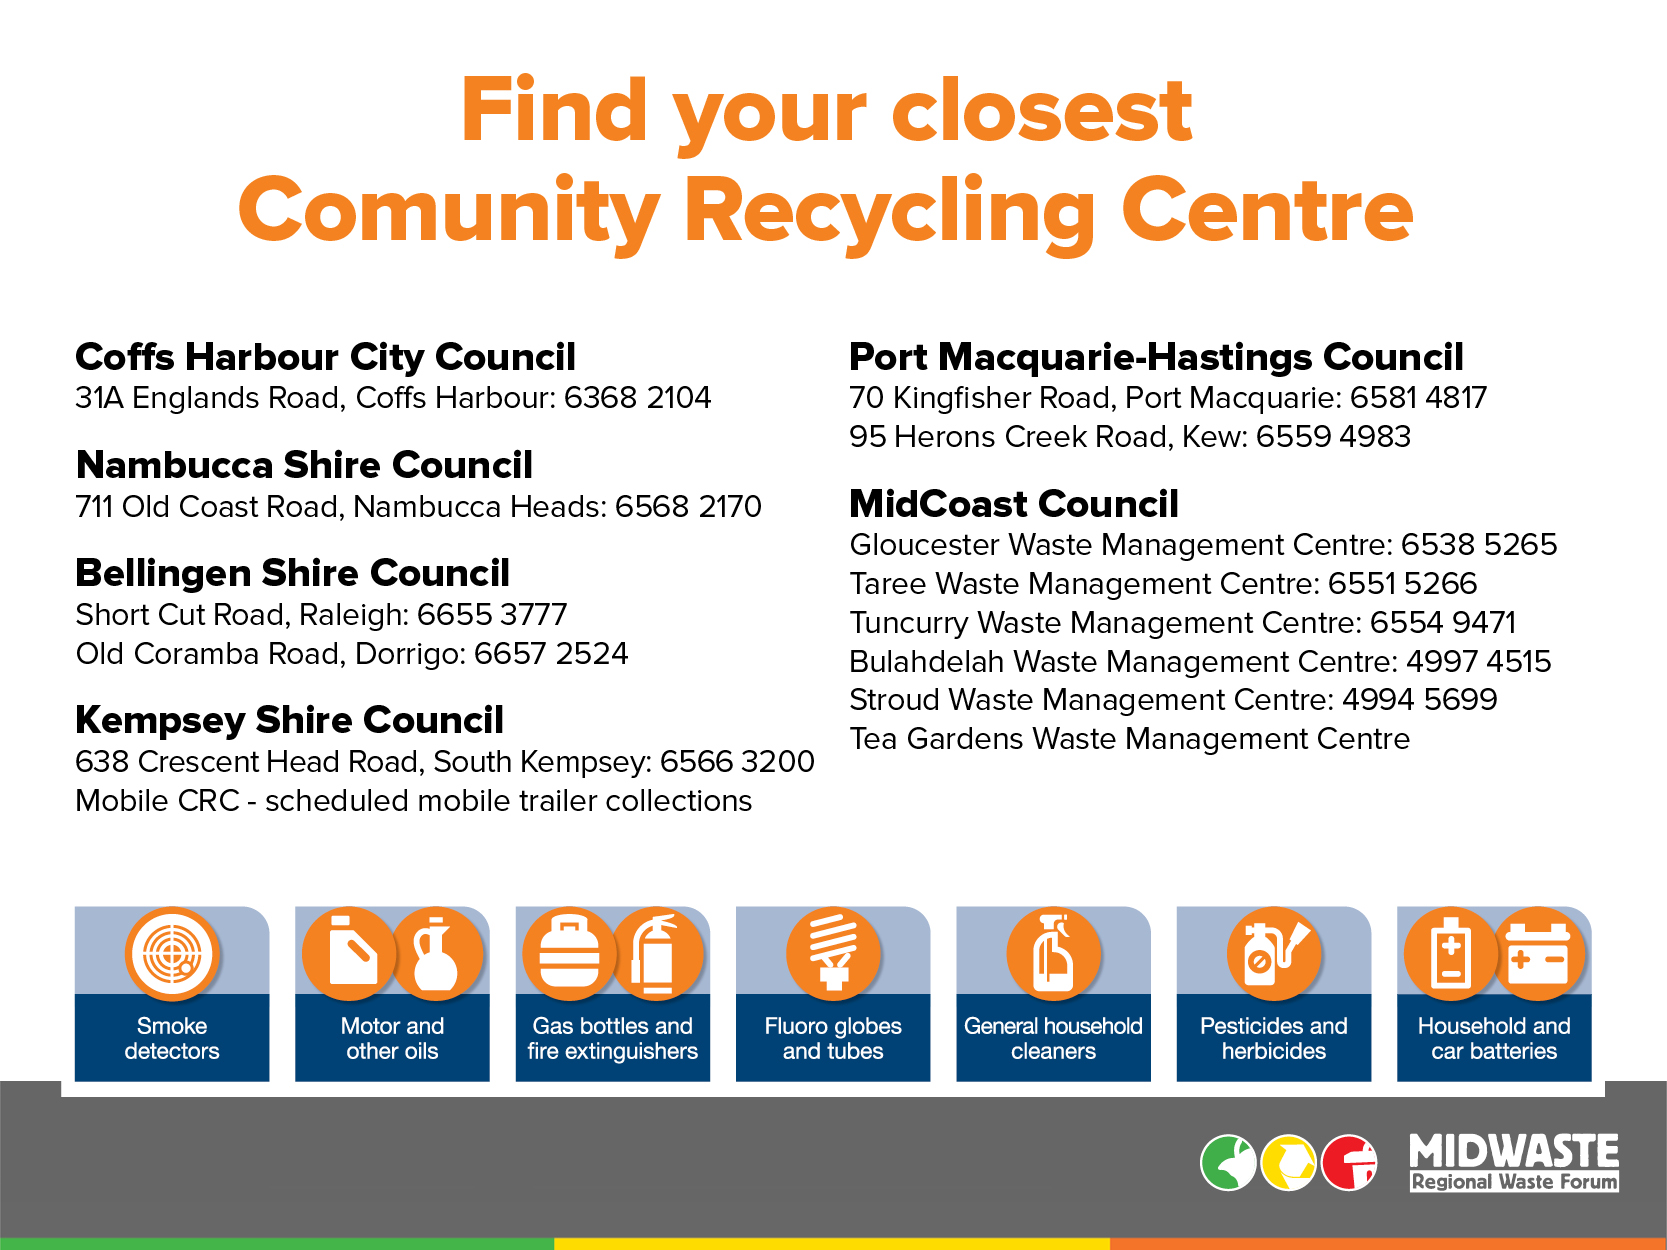 Community Recycling Centre Locations